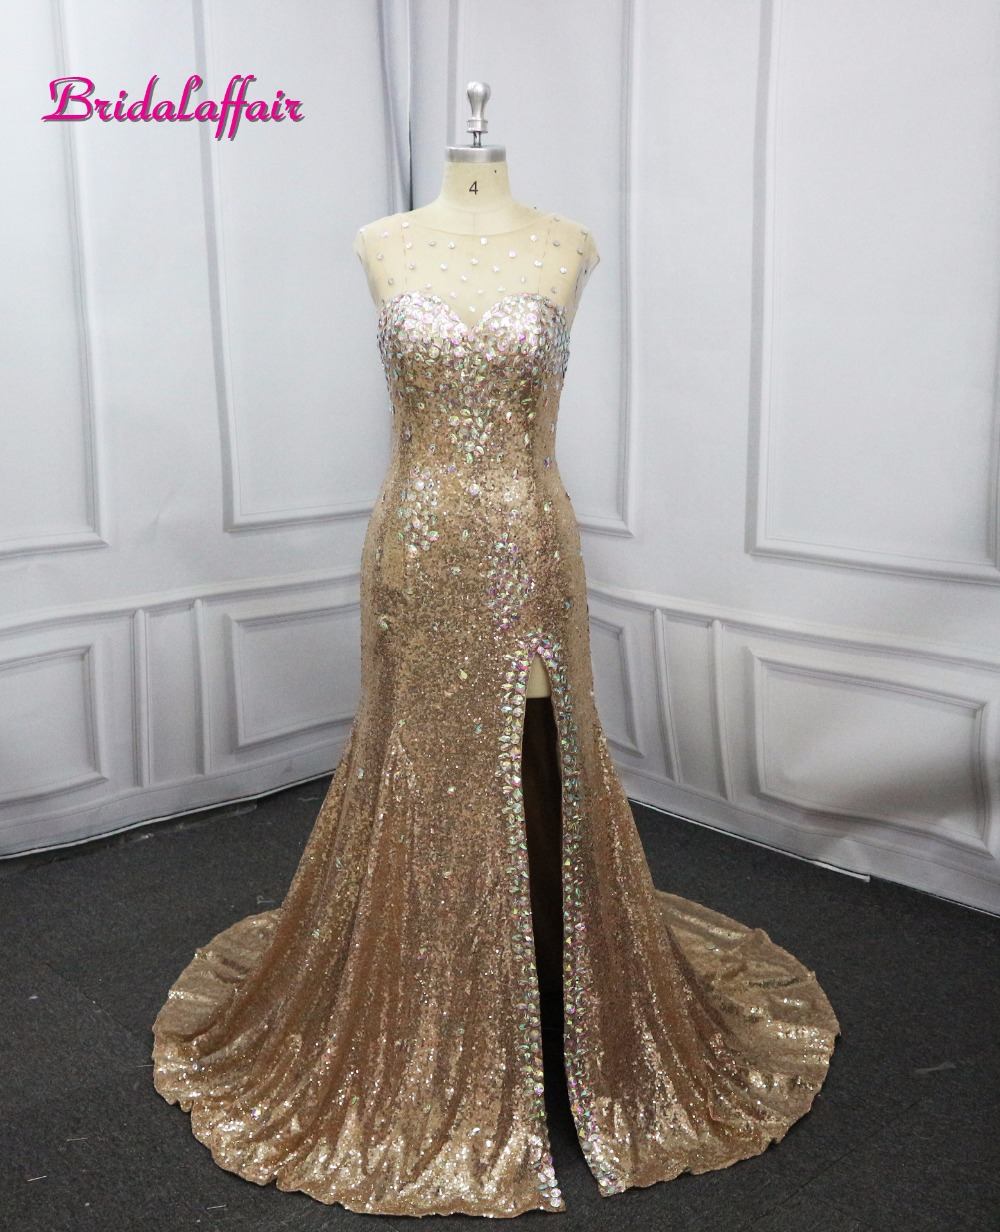 ba161f7fb0d65 Luxury Mermaid Prom Dresses 2018 customize Brilliant Evening Dress Long  video Sweetheart Shining Beading Sexy Woman Party Gowns